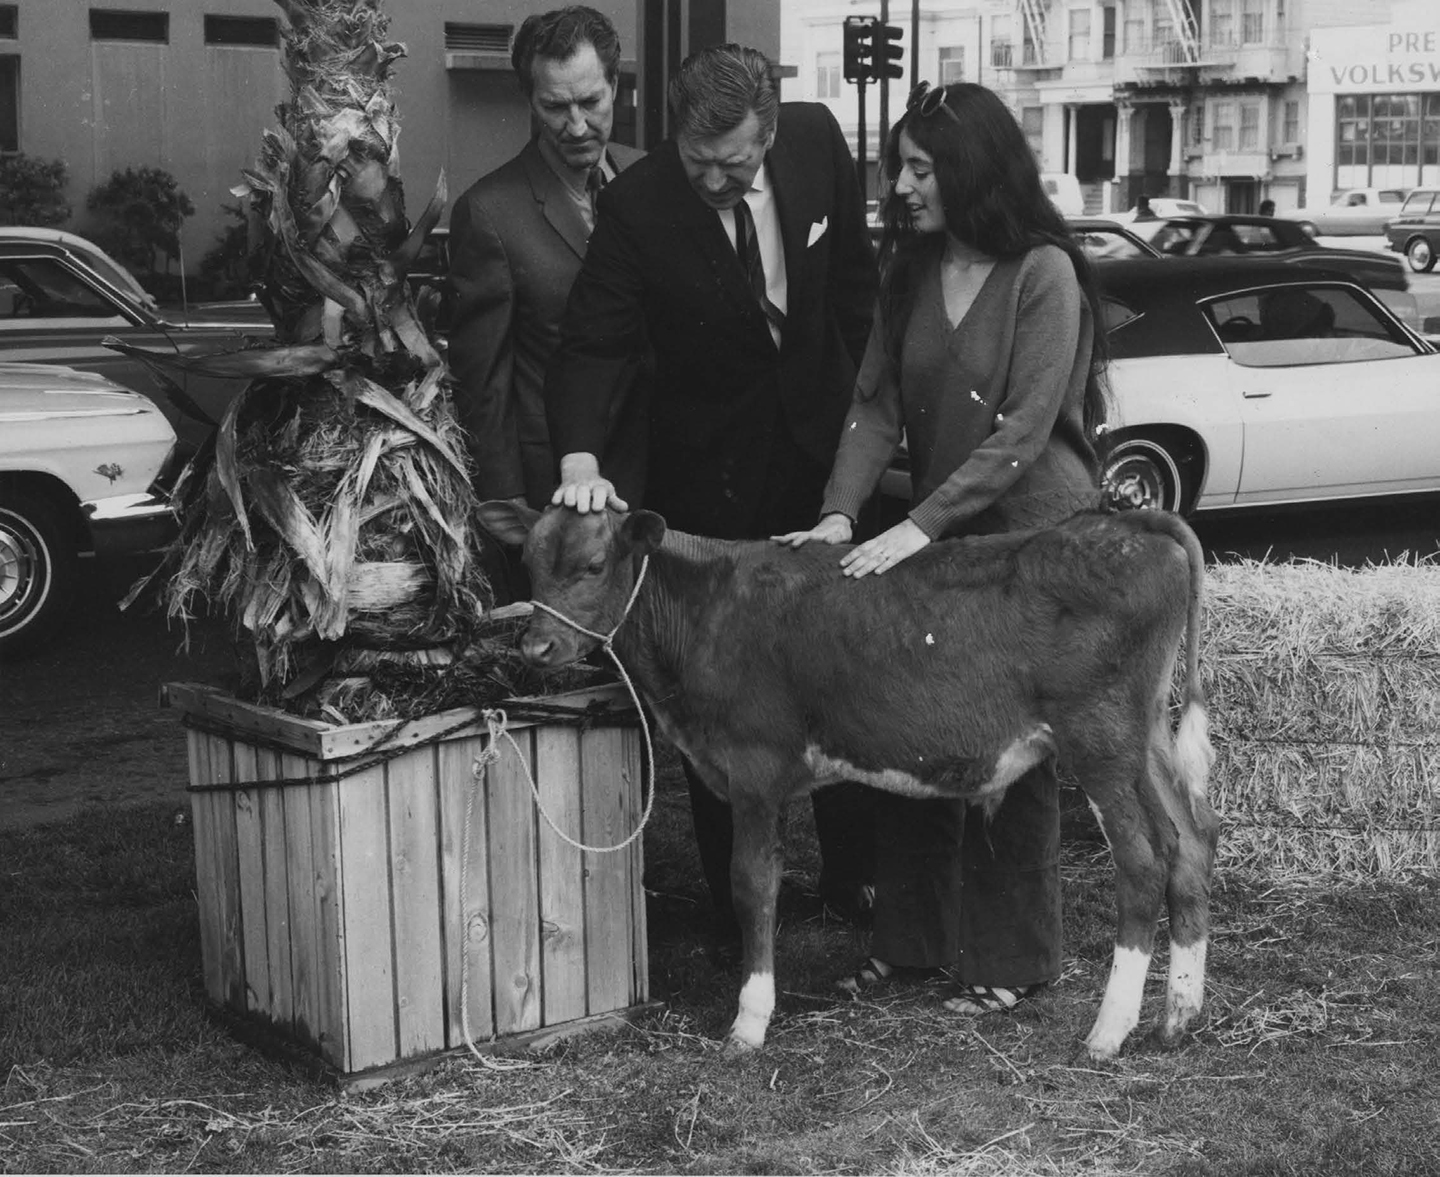 Bonnie Sherk, Portable Park II, 1970. Courtesy: the artist